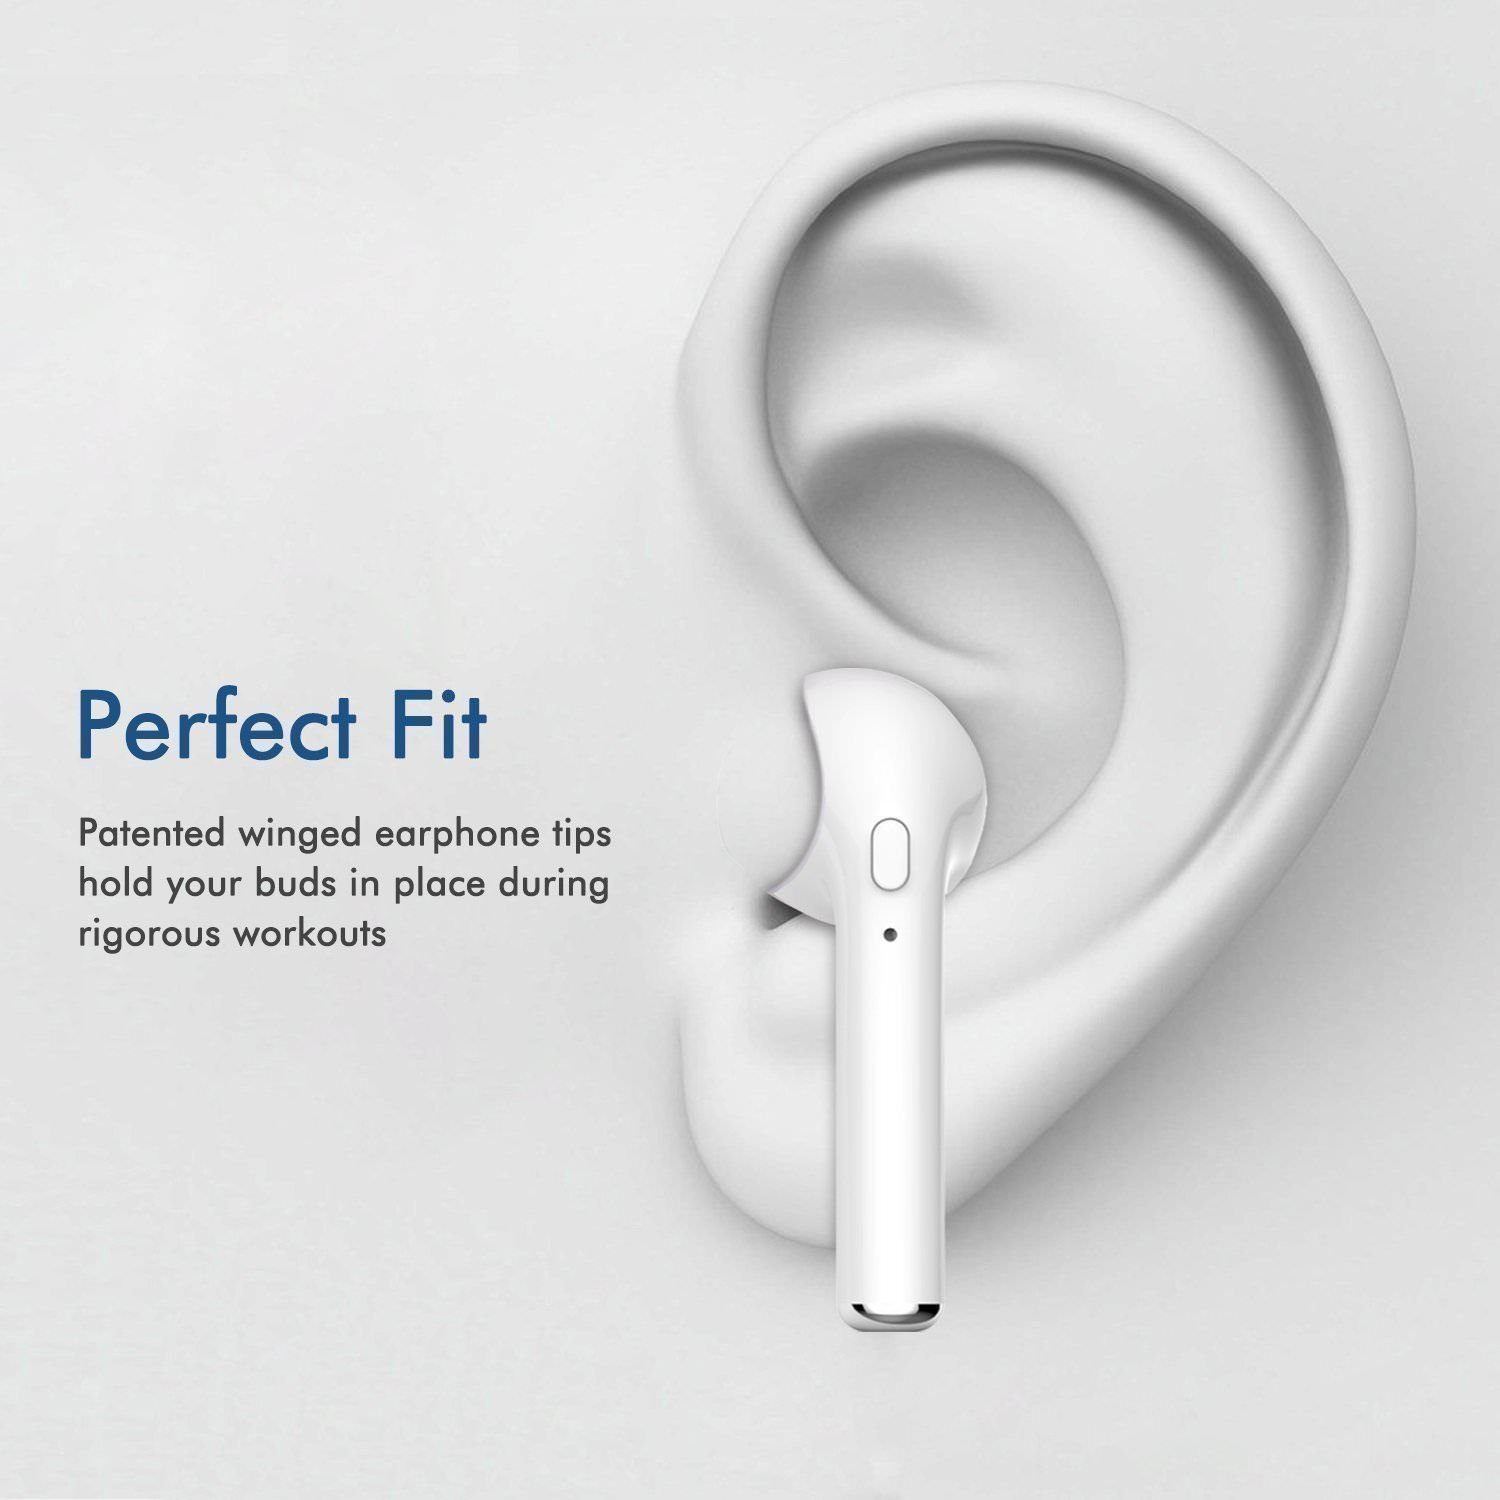 I7 Bluetooth Headset With Mic For All Bluetooth Compatible Devices - White